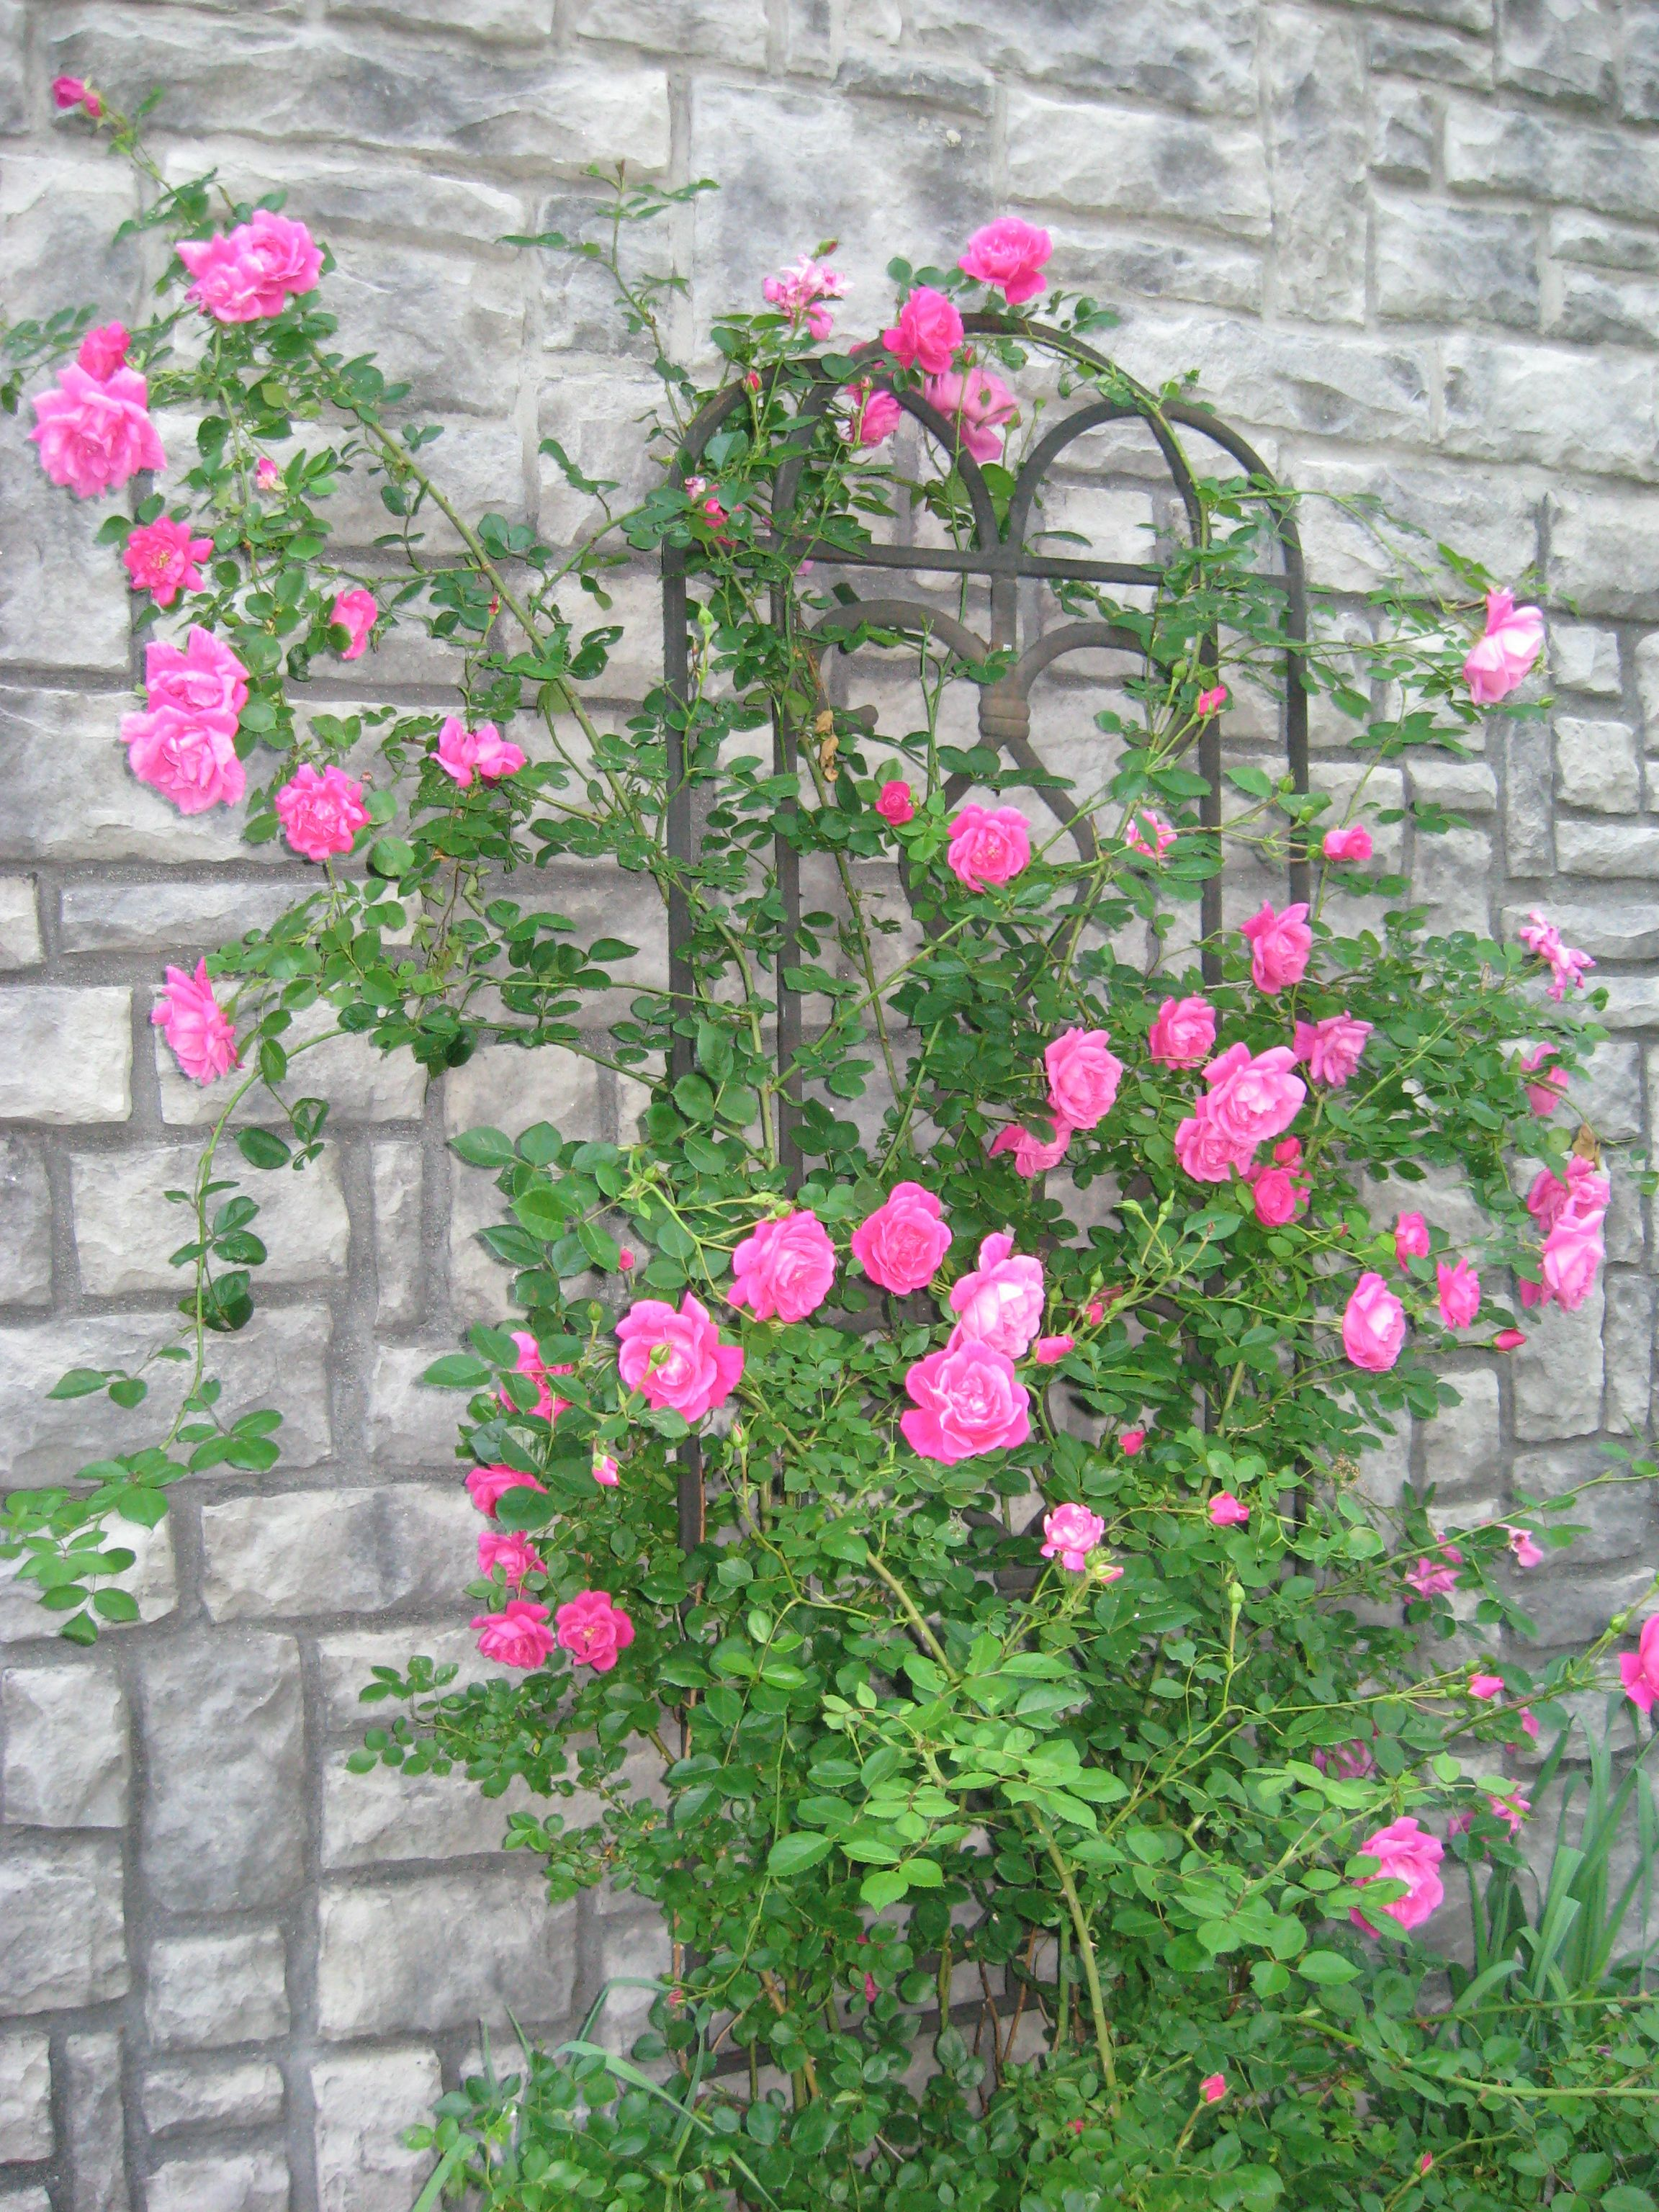 Rosebush - oldfashion, started as a transplanted twig from my former home.